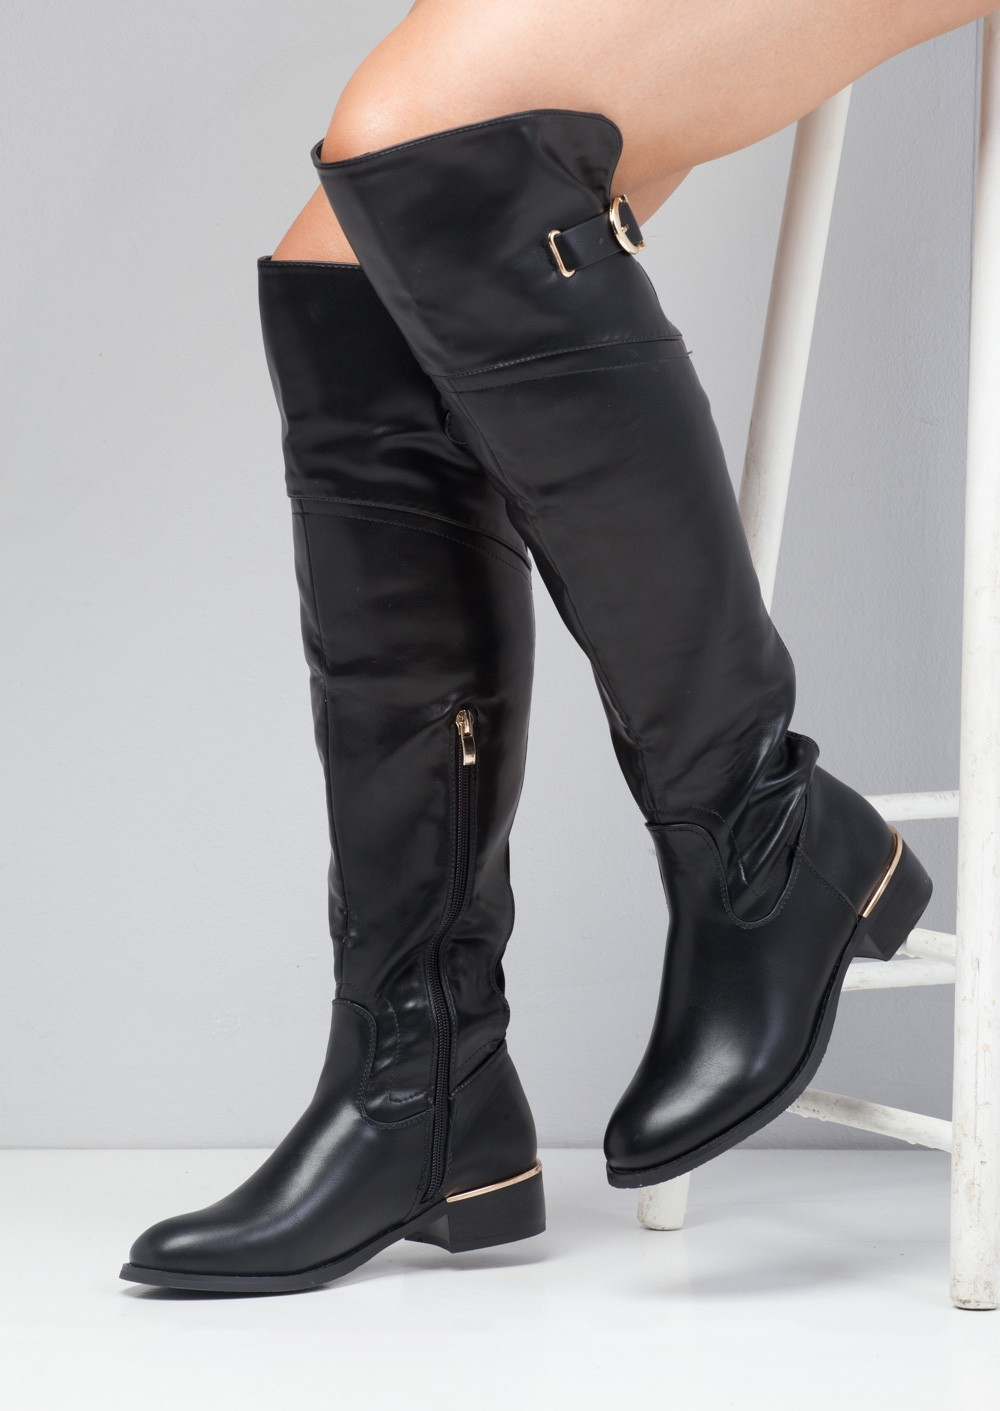 Shop for over the knee boots with ASOS. From flat or heeled over-the-knee boots in dress down stretch, to leather & suede heeled styles available at ASOS.